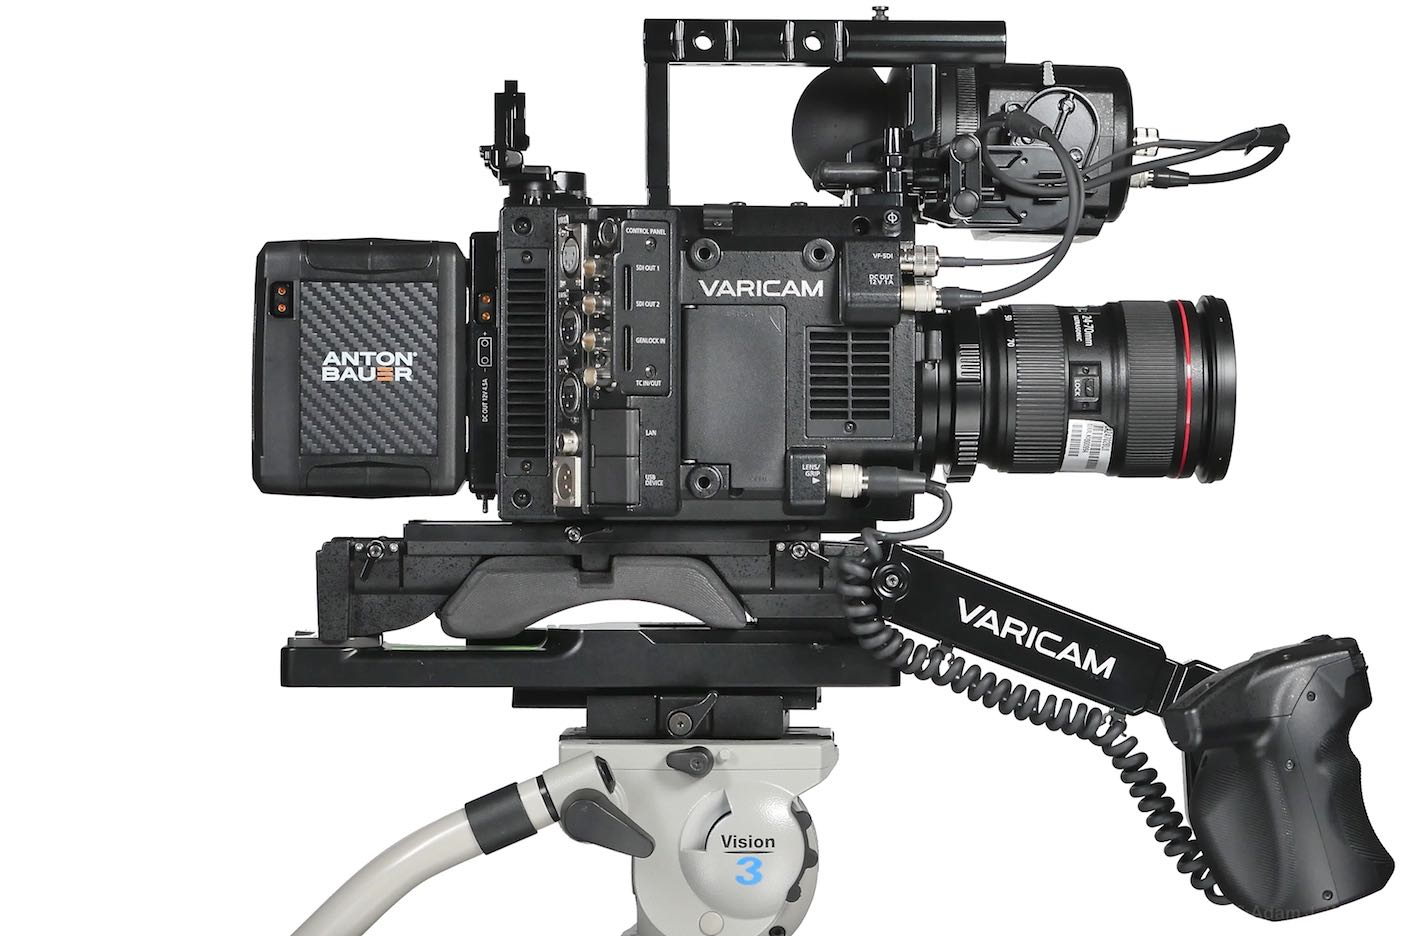 VariCam LT, side view